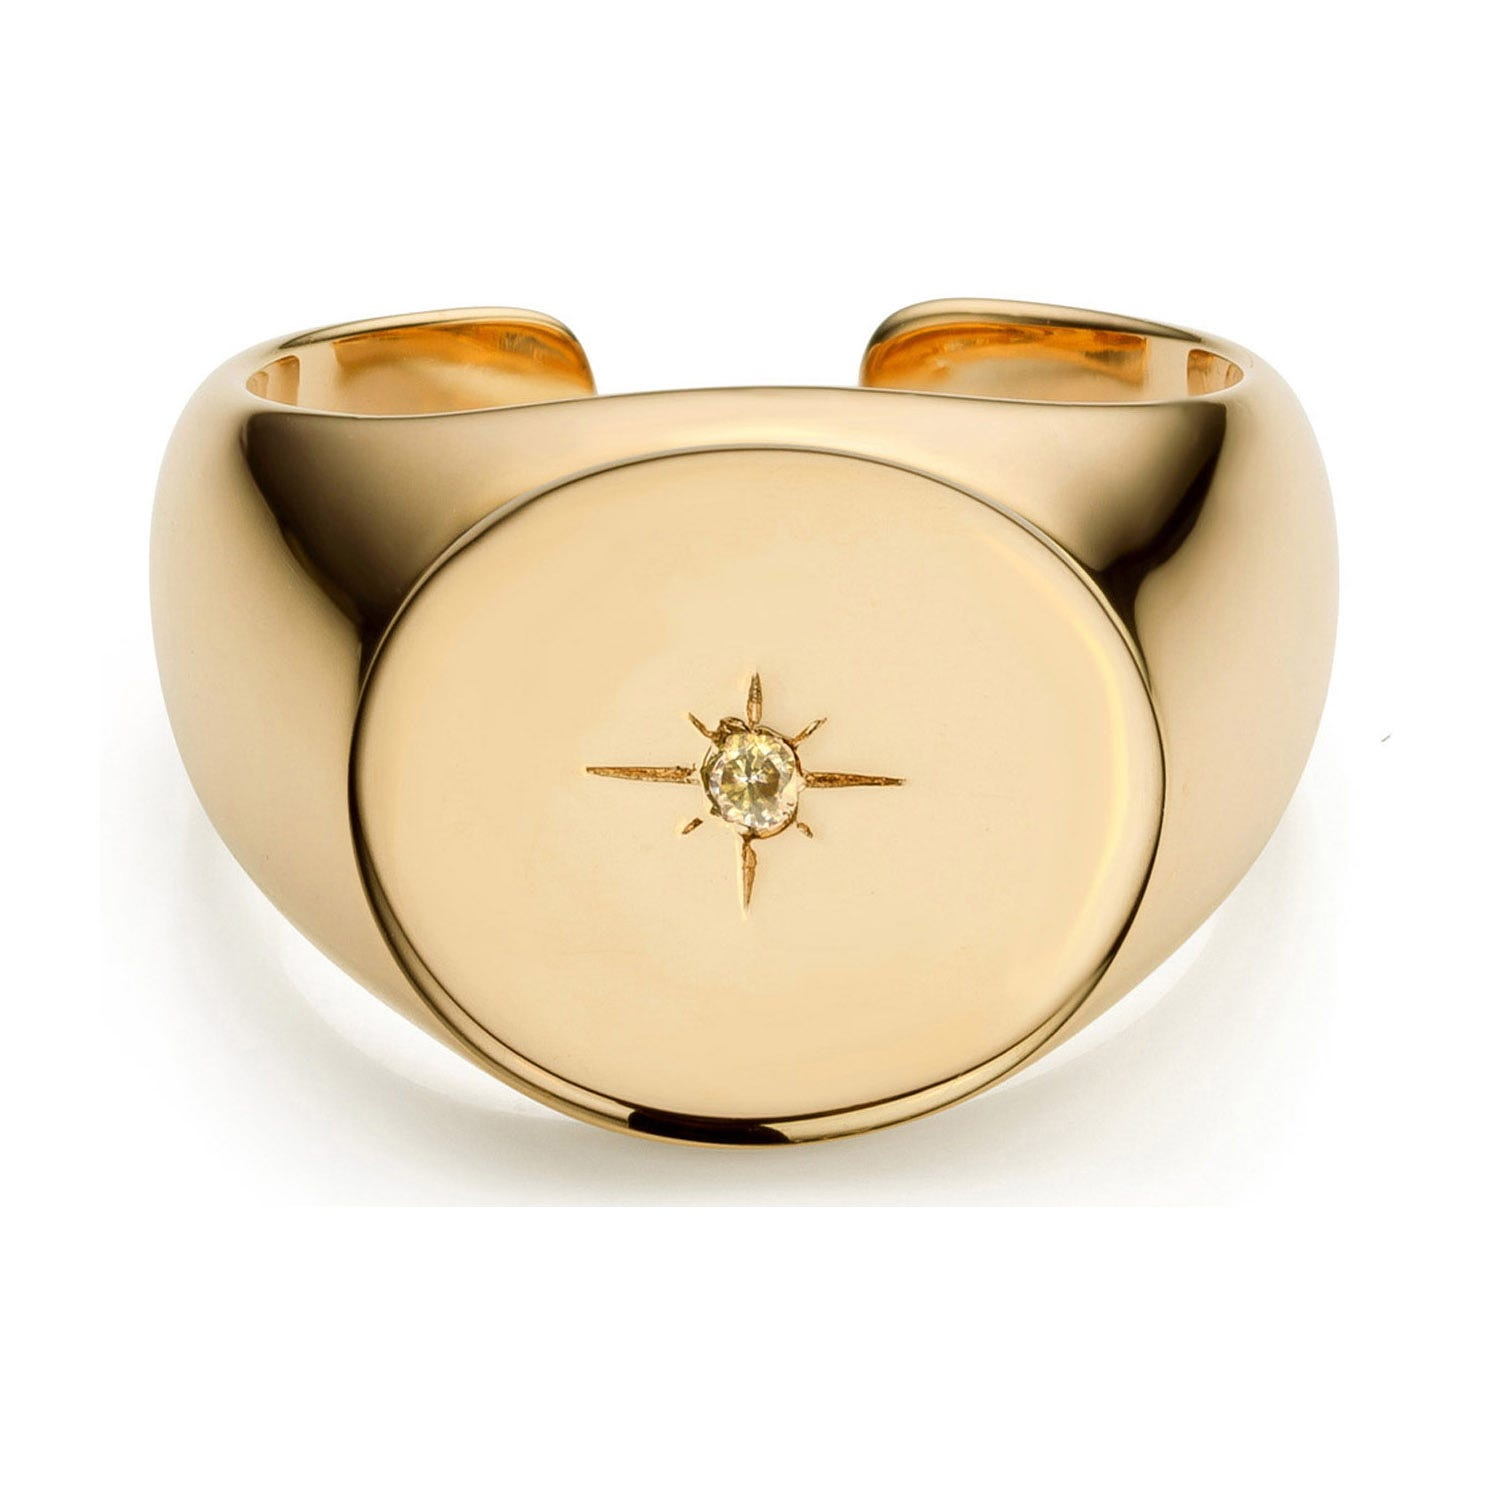 Mya Bay Yellow Gold-Plated Starry Signet Ring